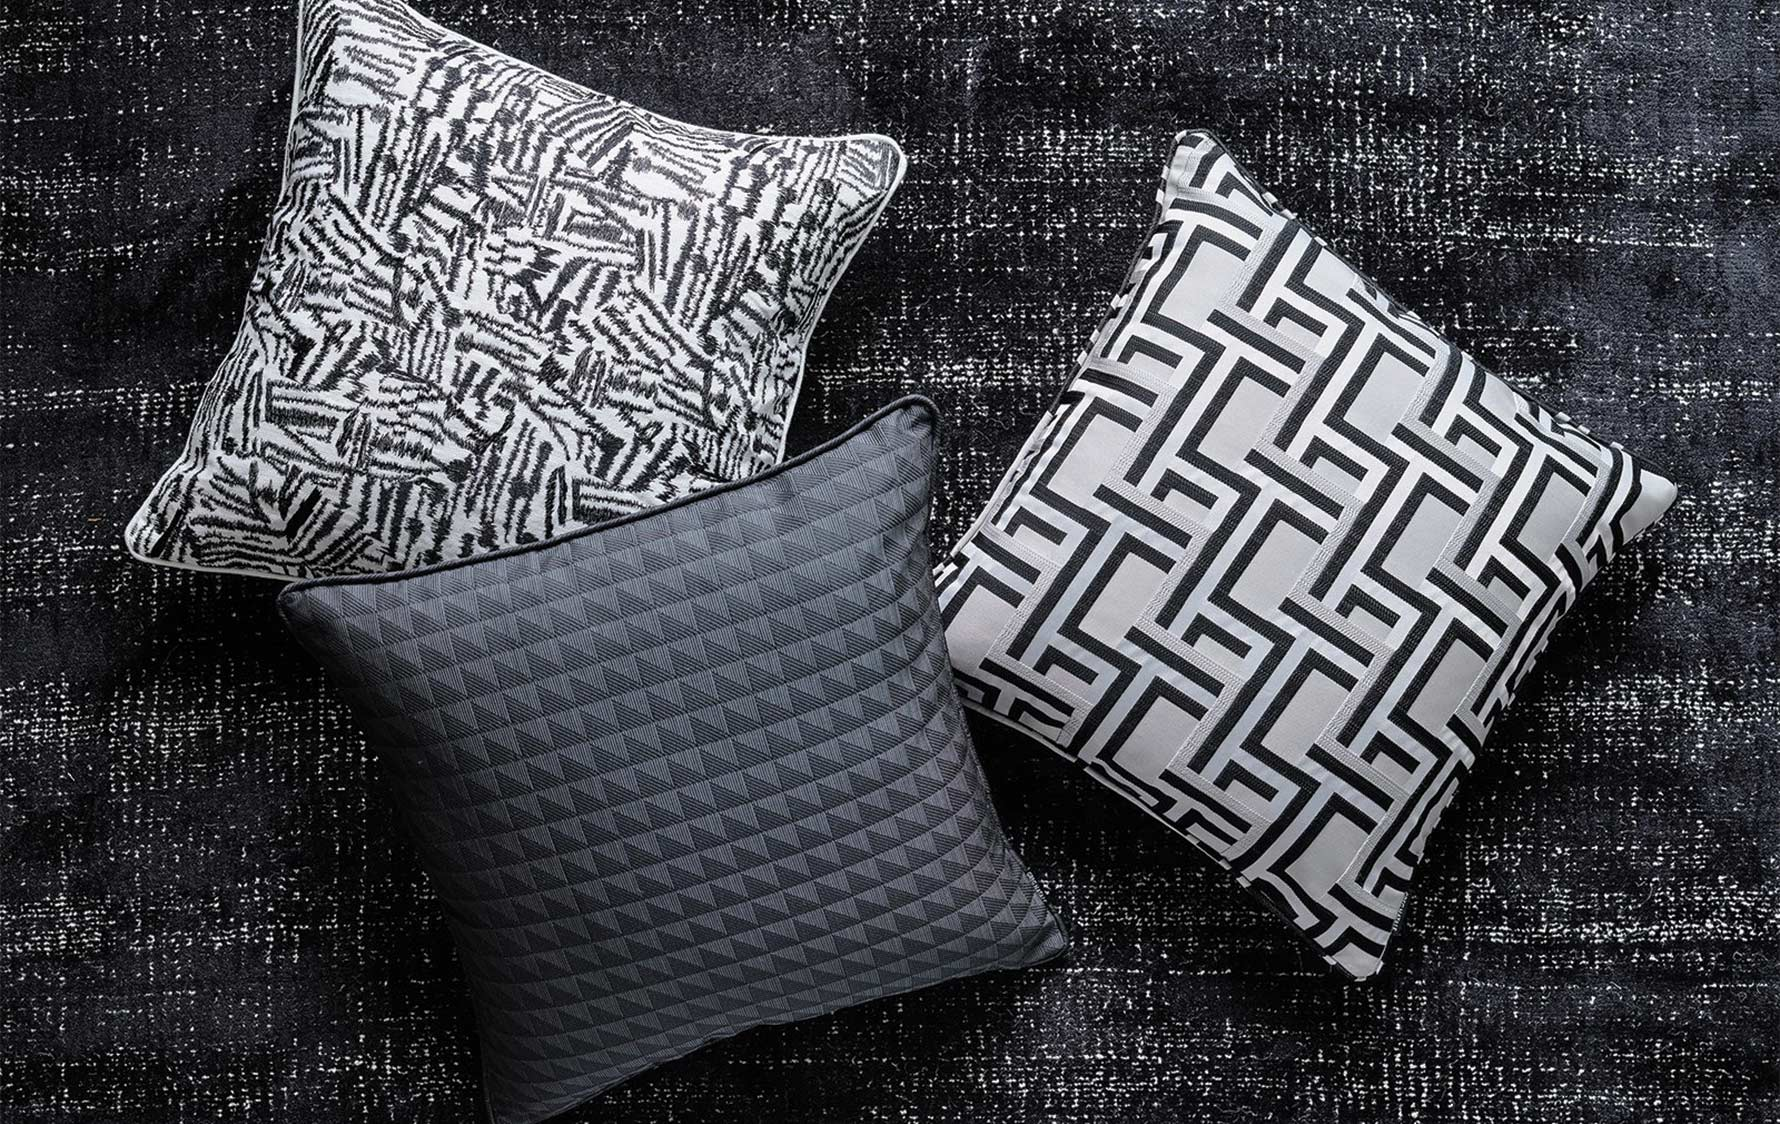 9 Best Luxury Cushions To Buy For Your Home | LuxDeco.com